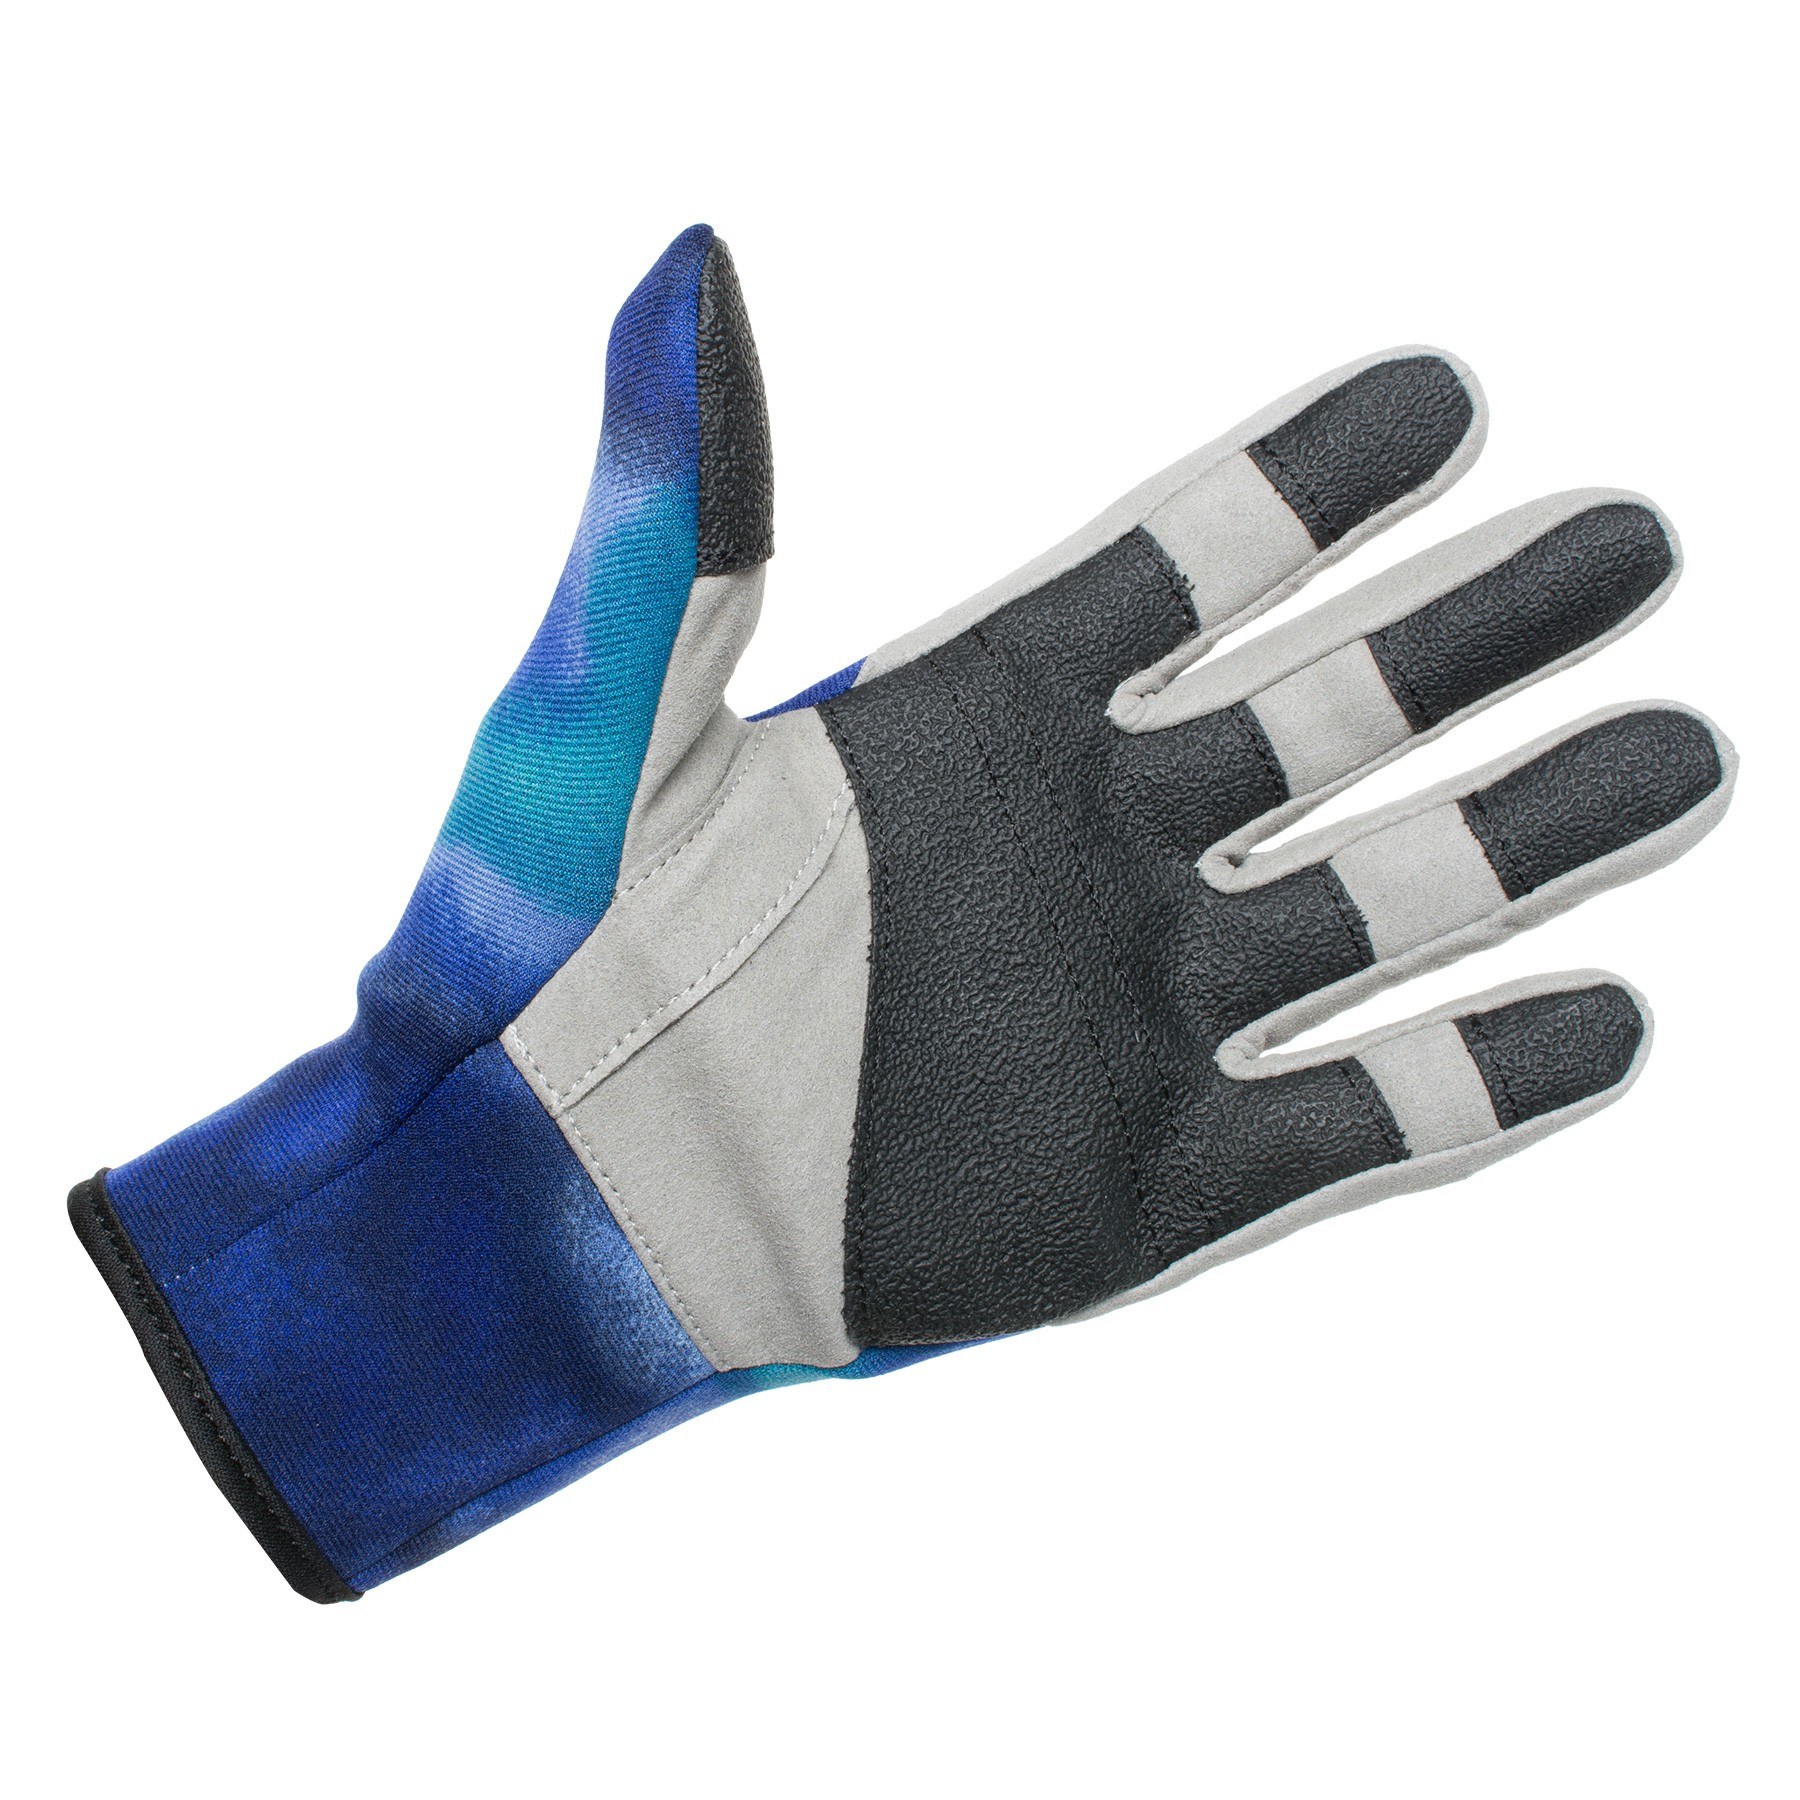 HAMMERHEAD TUFF GRAB 2MM AMARRA GLOVE BLUE PALM